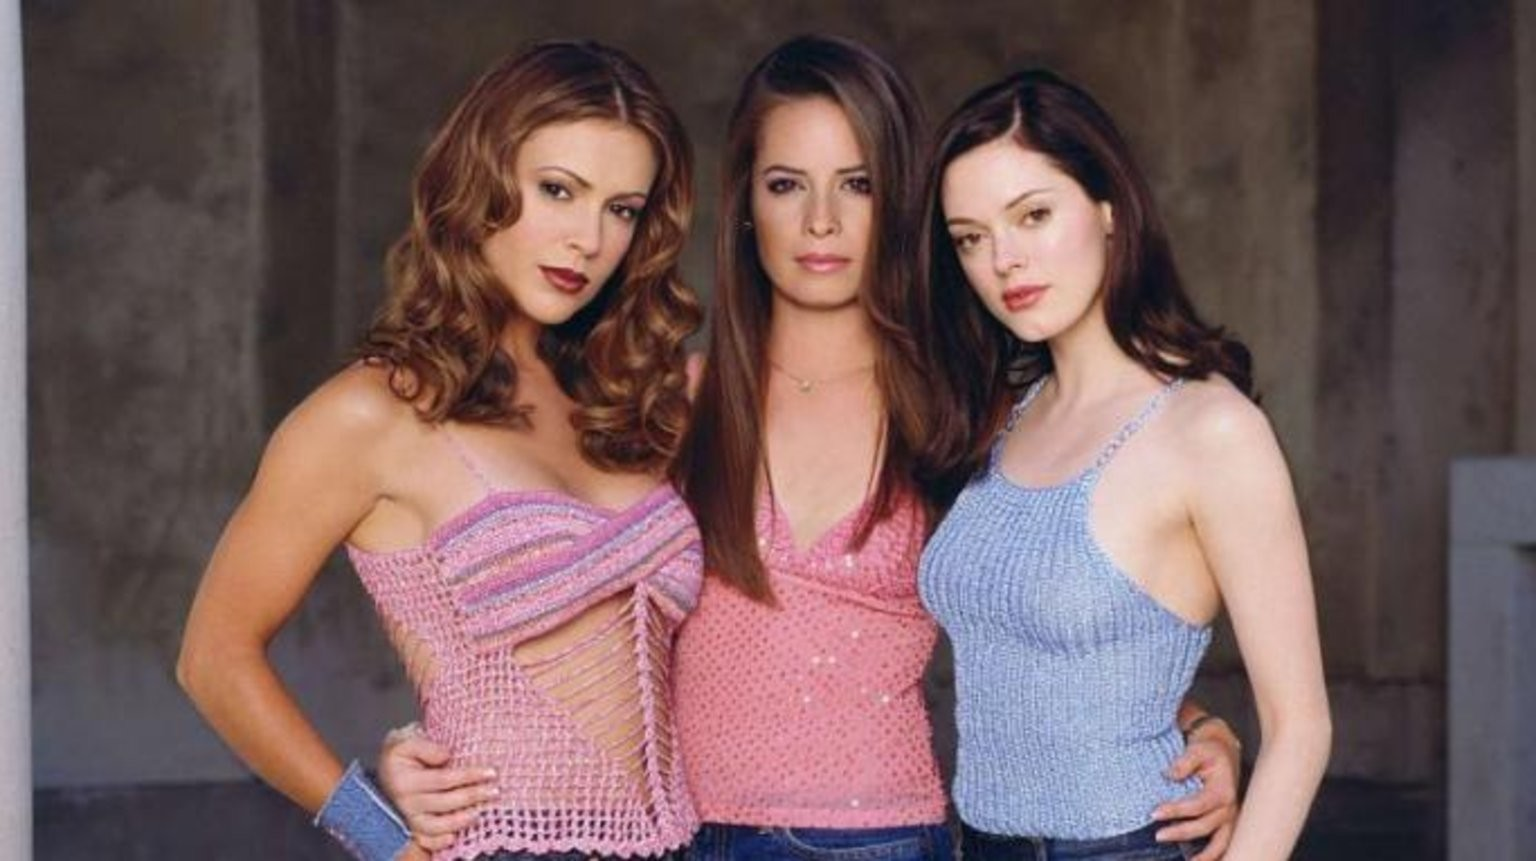 Alyssa Milano Won't Appear On The 'Charmed' Reboot, So There Goes Its Chance To Redeem Itself